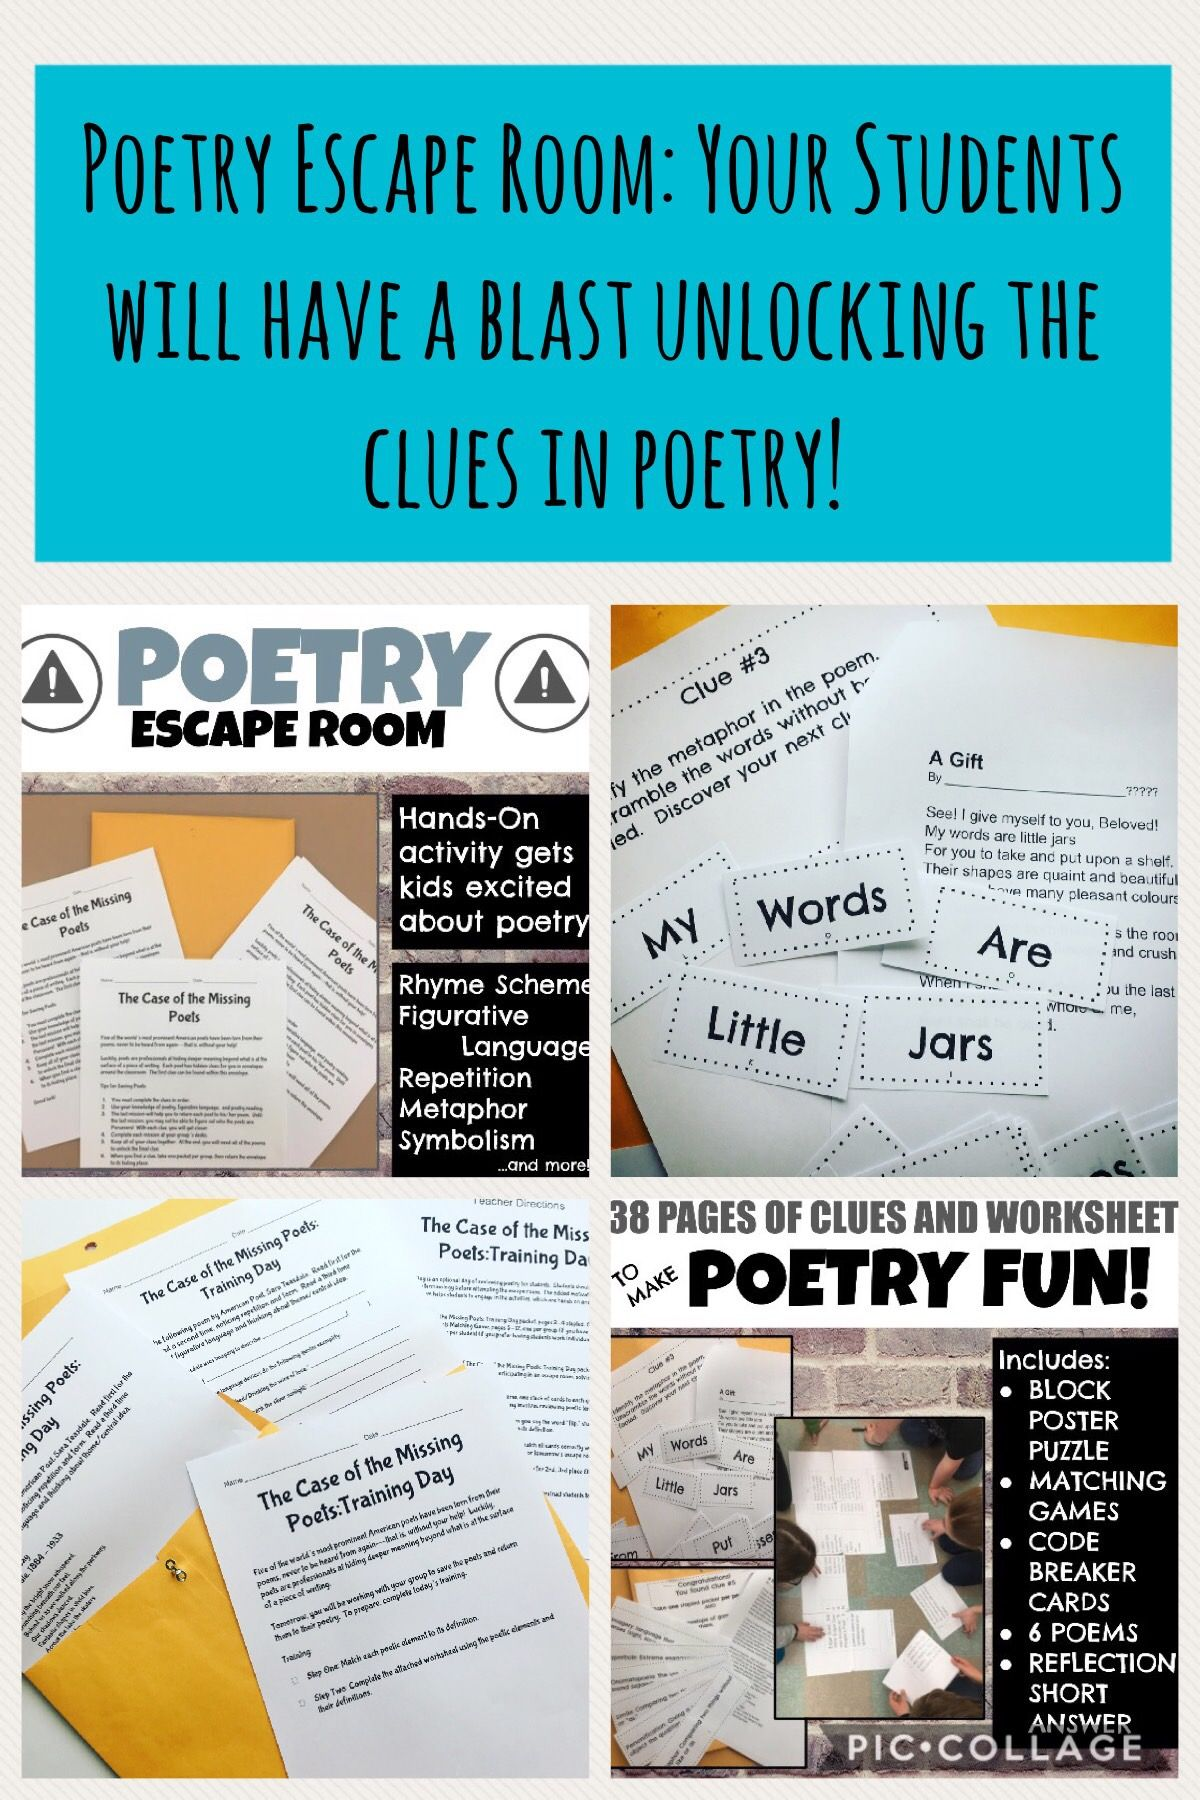 Worksheets Rhyme Scheme Worksheet worksheet rhyme scheme fun study site the only problem with poetry escape room is that your students gifted